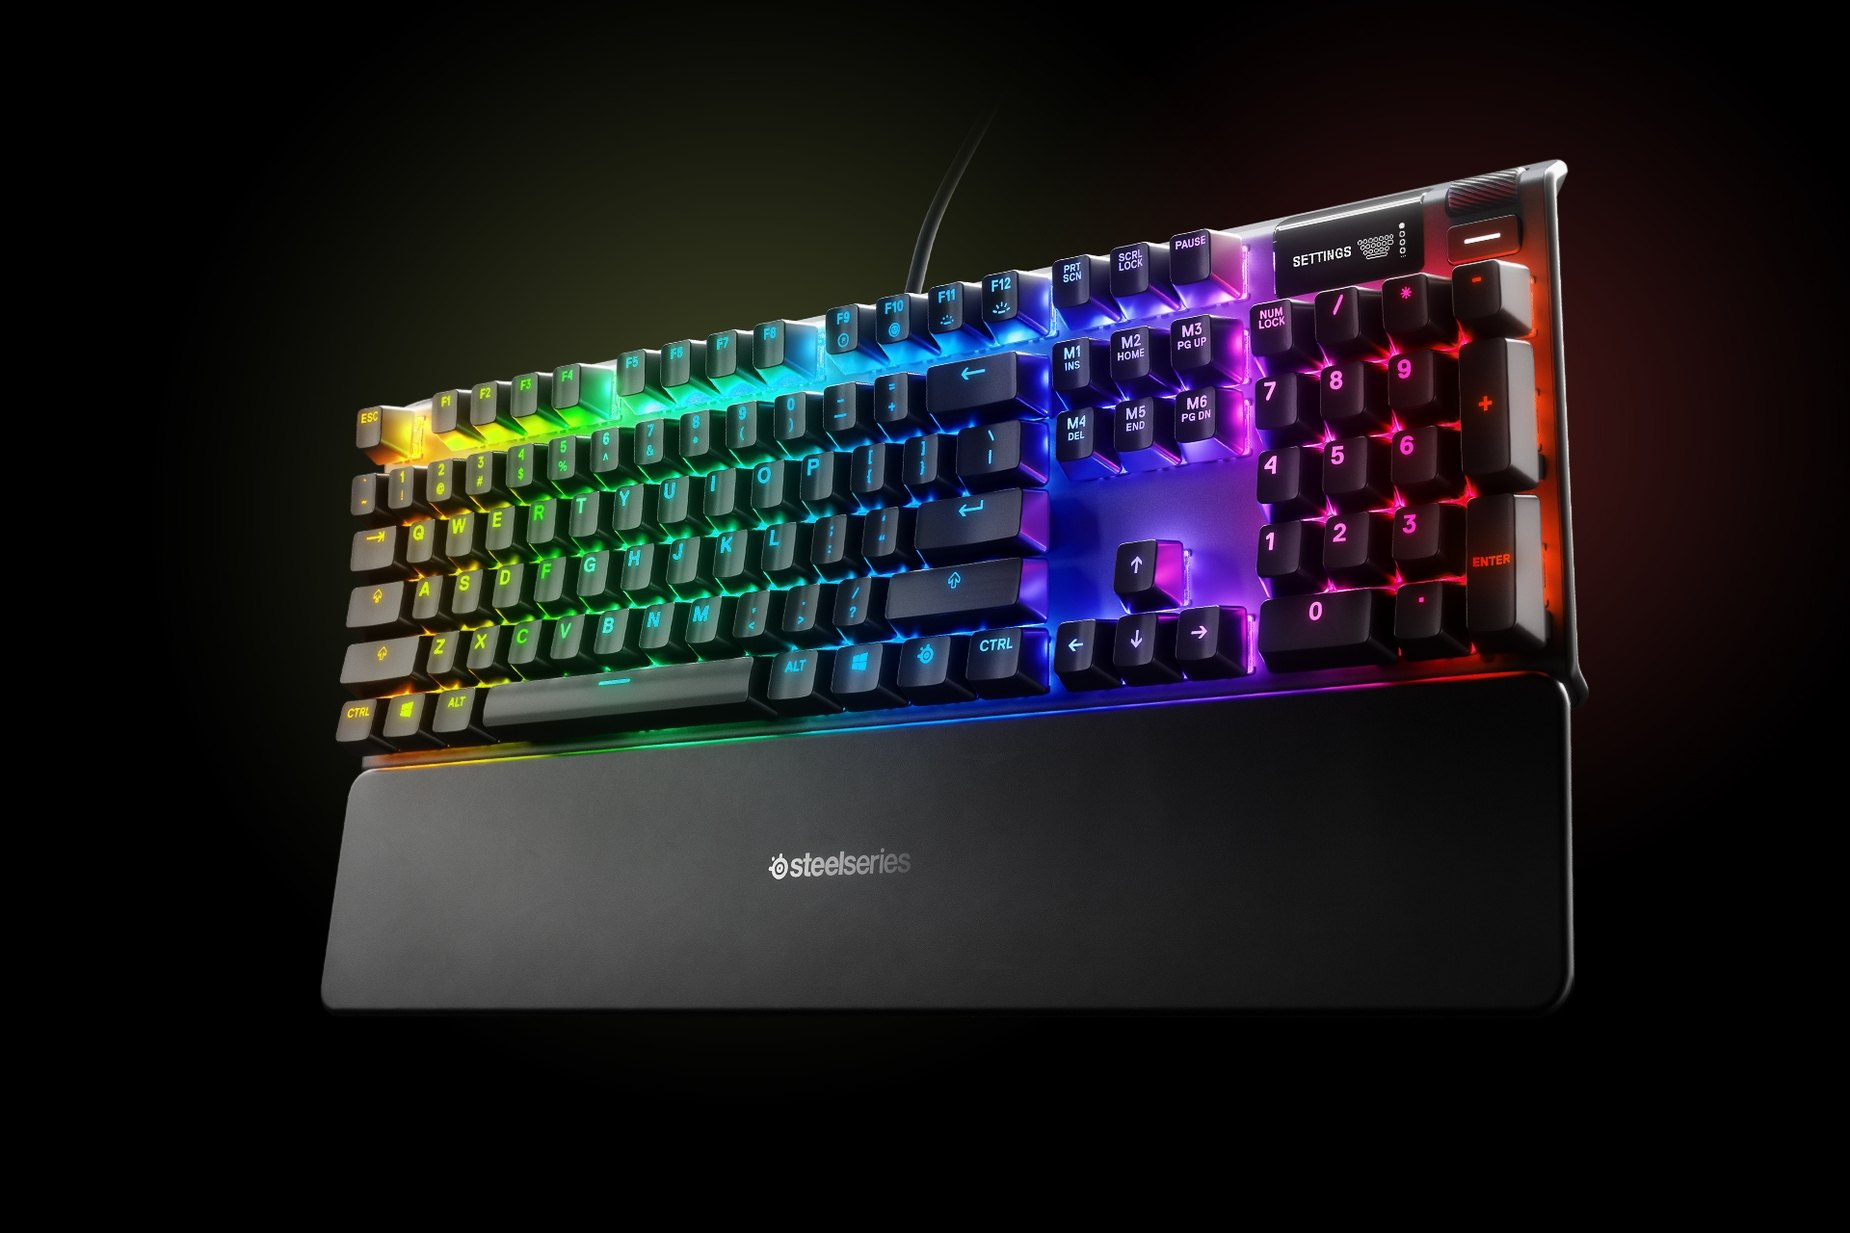 英国英语-Apex 7 (Red Switch) gaming keyboard with the illumination lit up on dark background, also shows the OLED screen and controls used to change settings and adjust audio